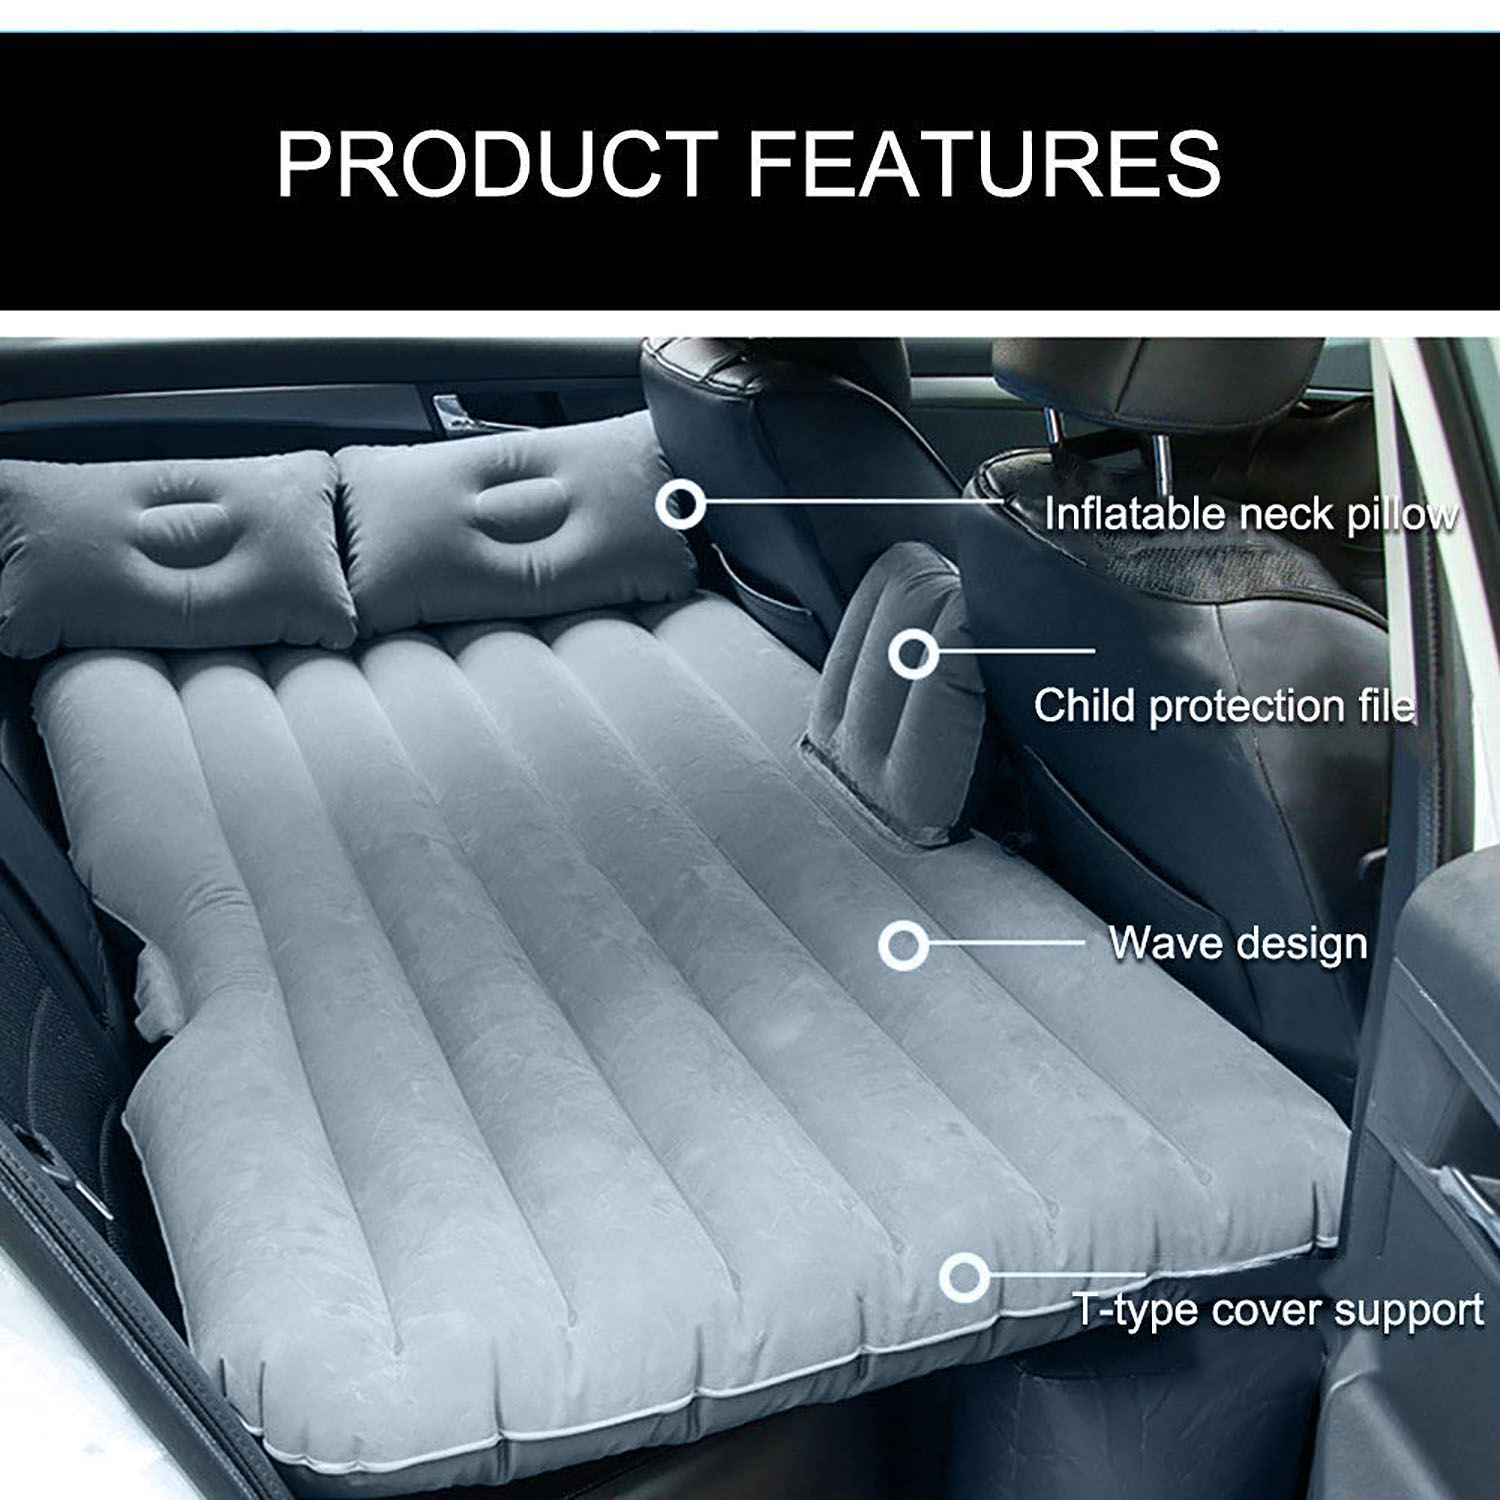 Car Travel Air Bed Best Quality Iinflatable Car Travel Bed Air Bed Inflatable Mattress